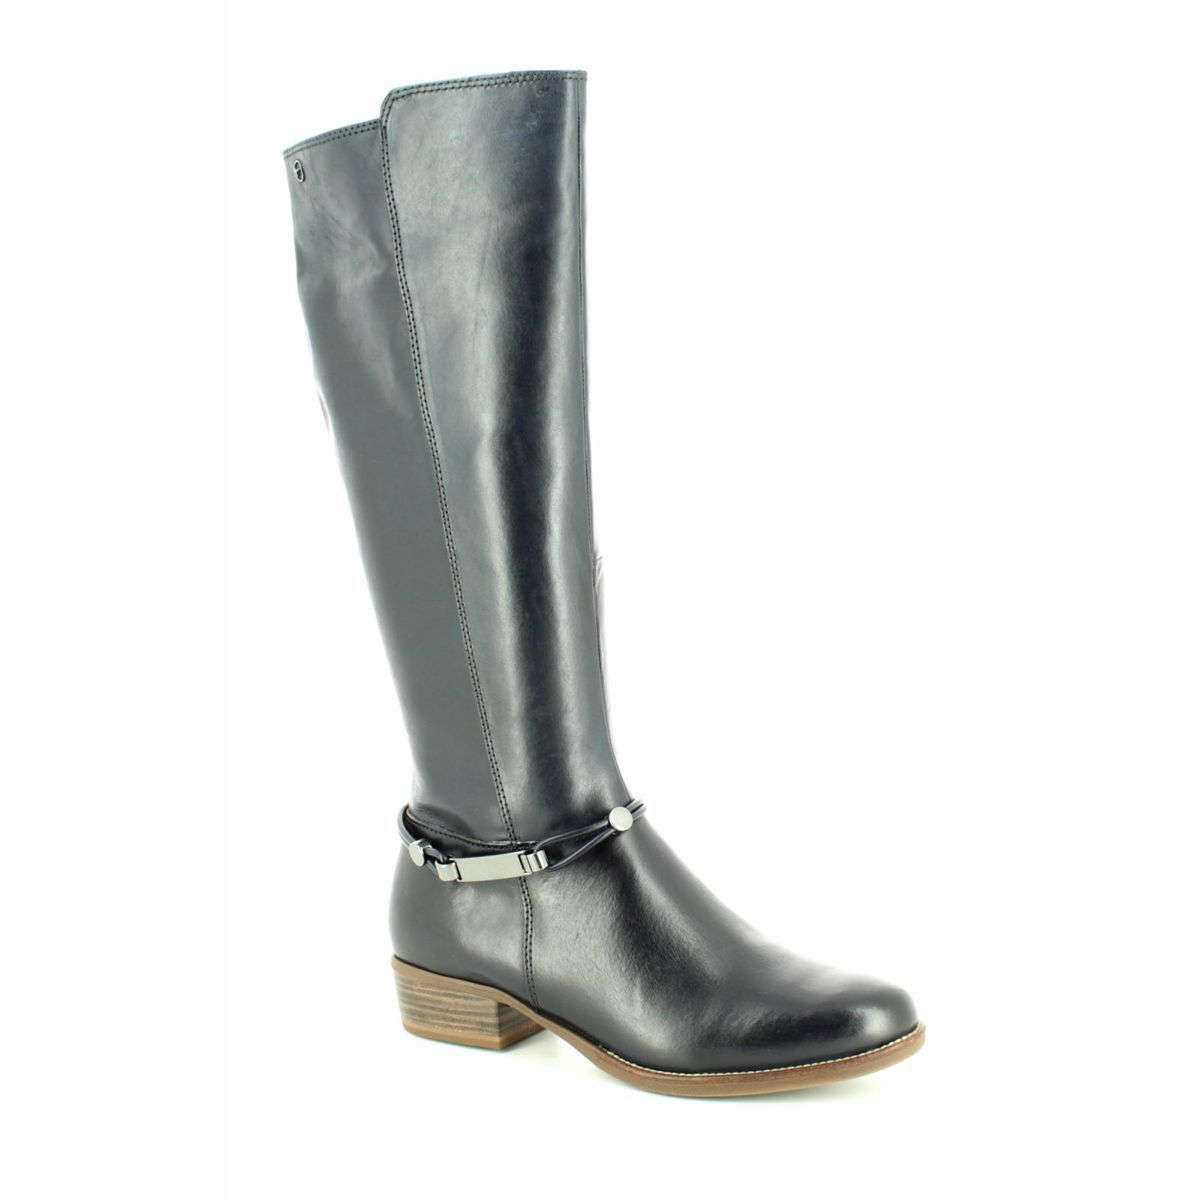 b3f196ed752293 Tamaris Knee-high Boots - Navy leather - 25509 21 805 MARLY 85